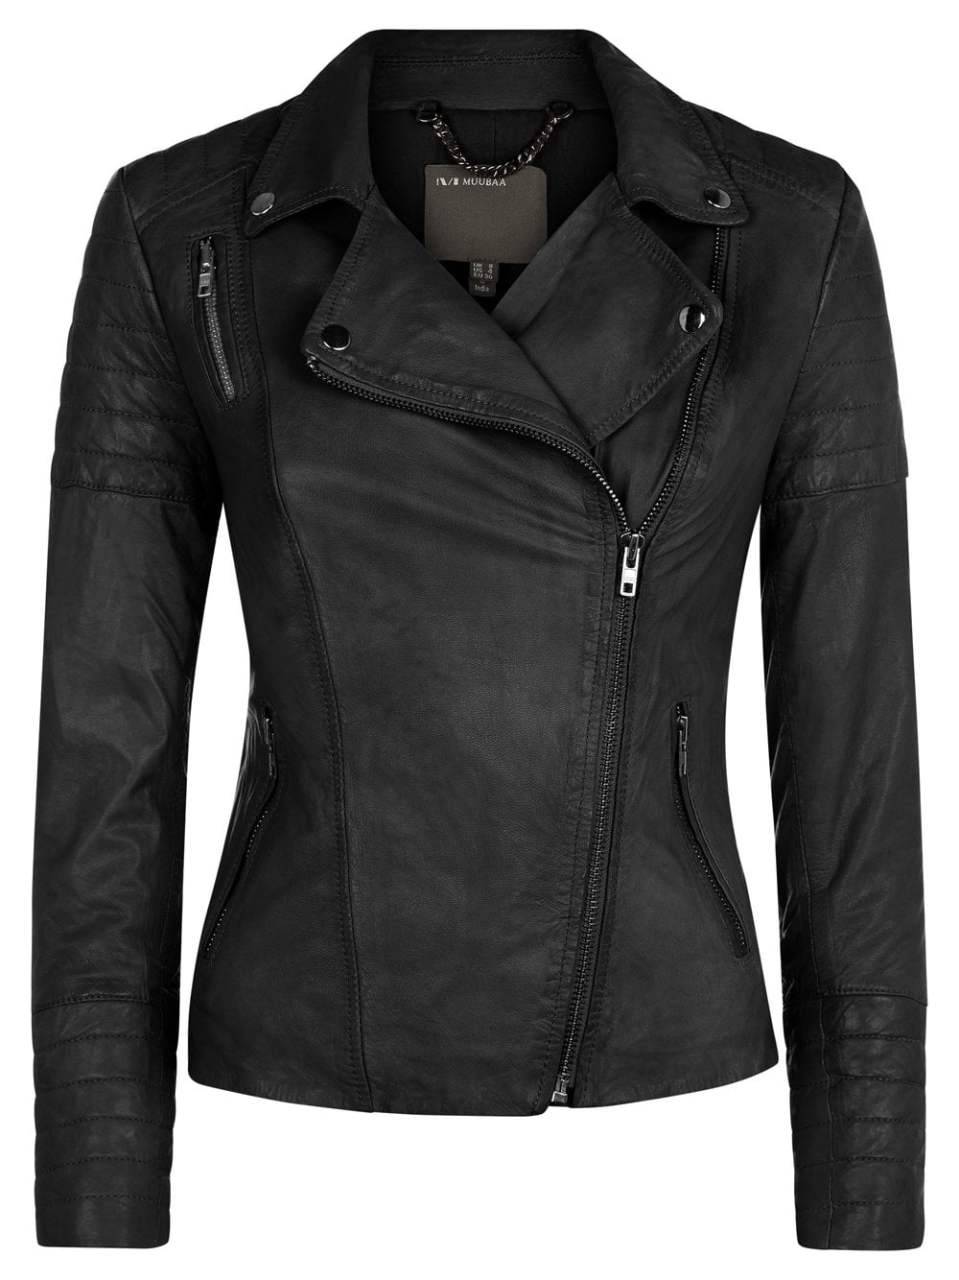 mersault-black-leather-biker-jacket-p713-3117_image